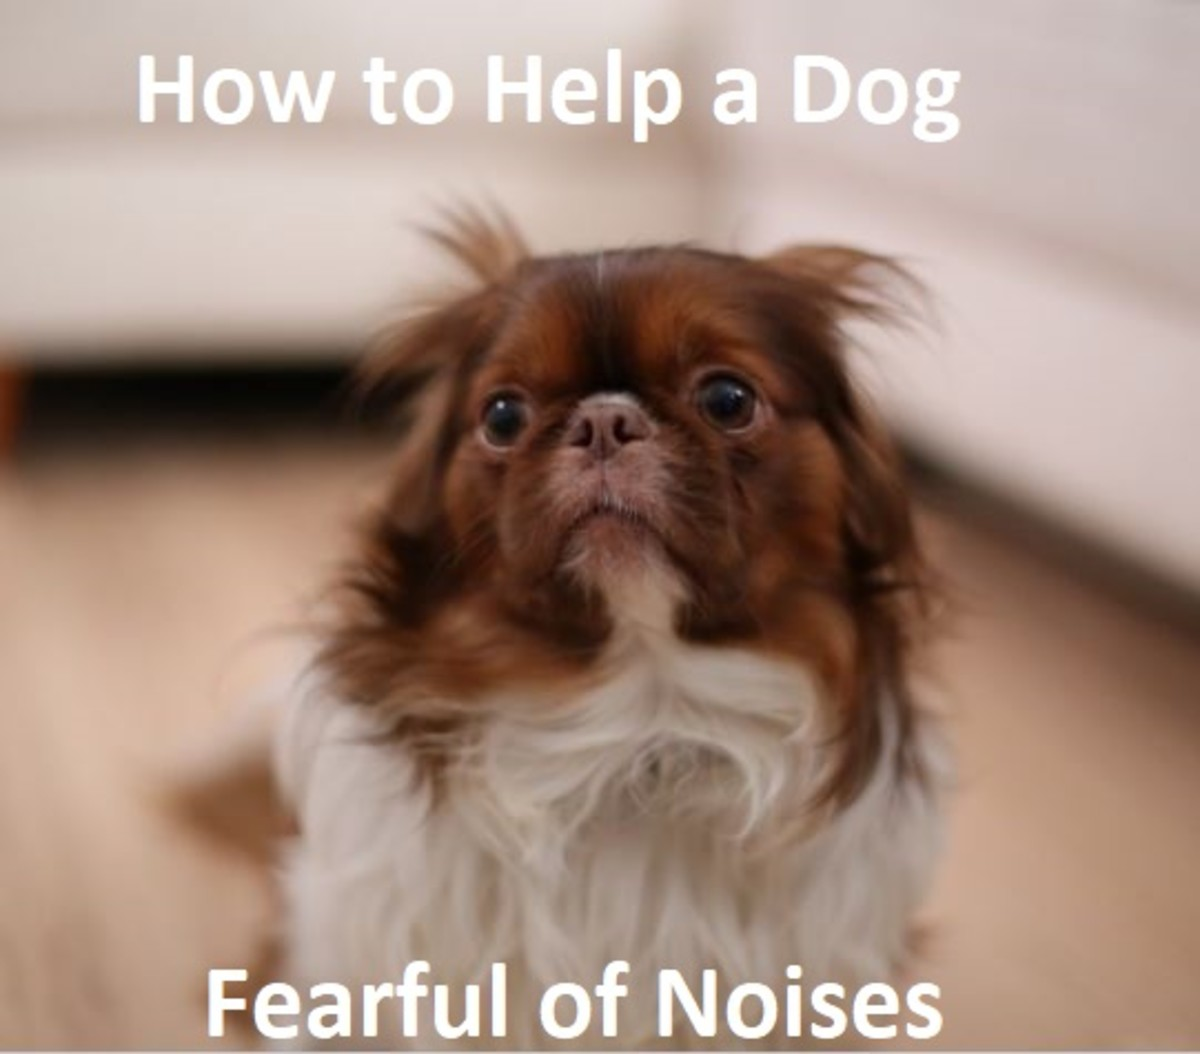 How to Help a Dog Fearful of Loud Noises